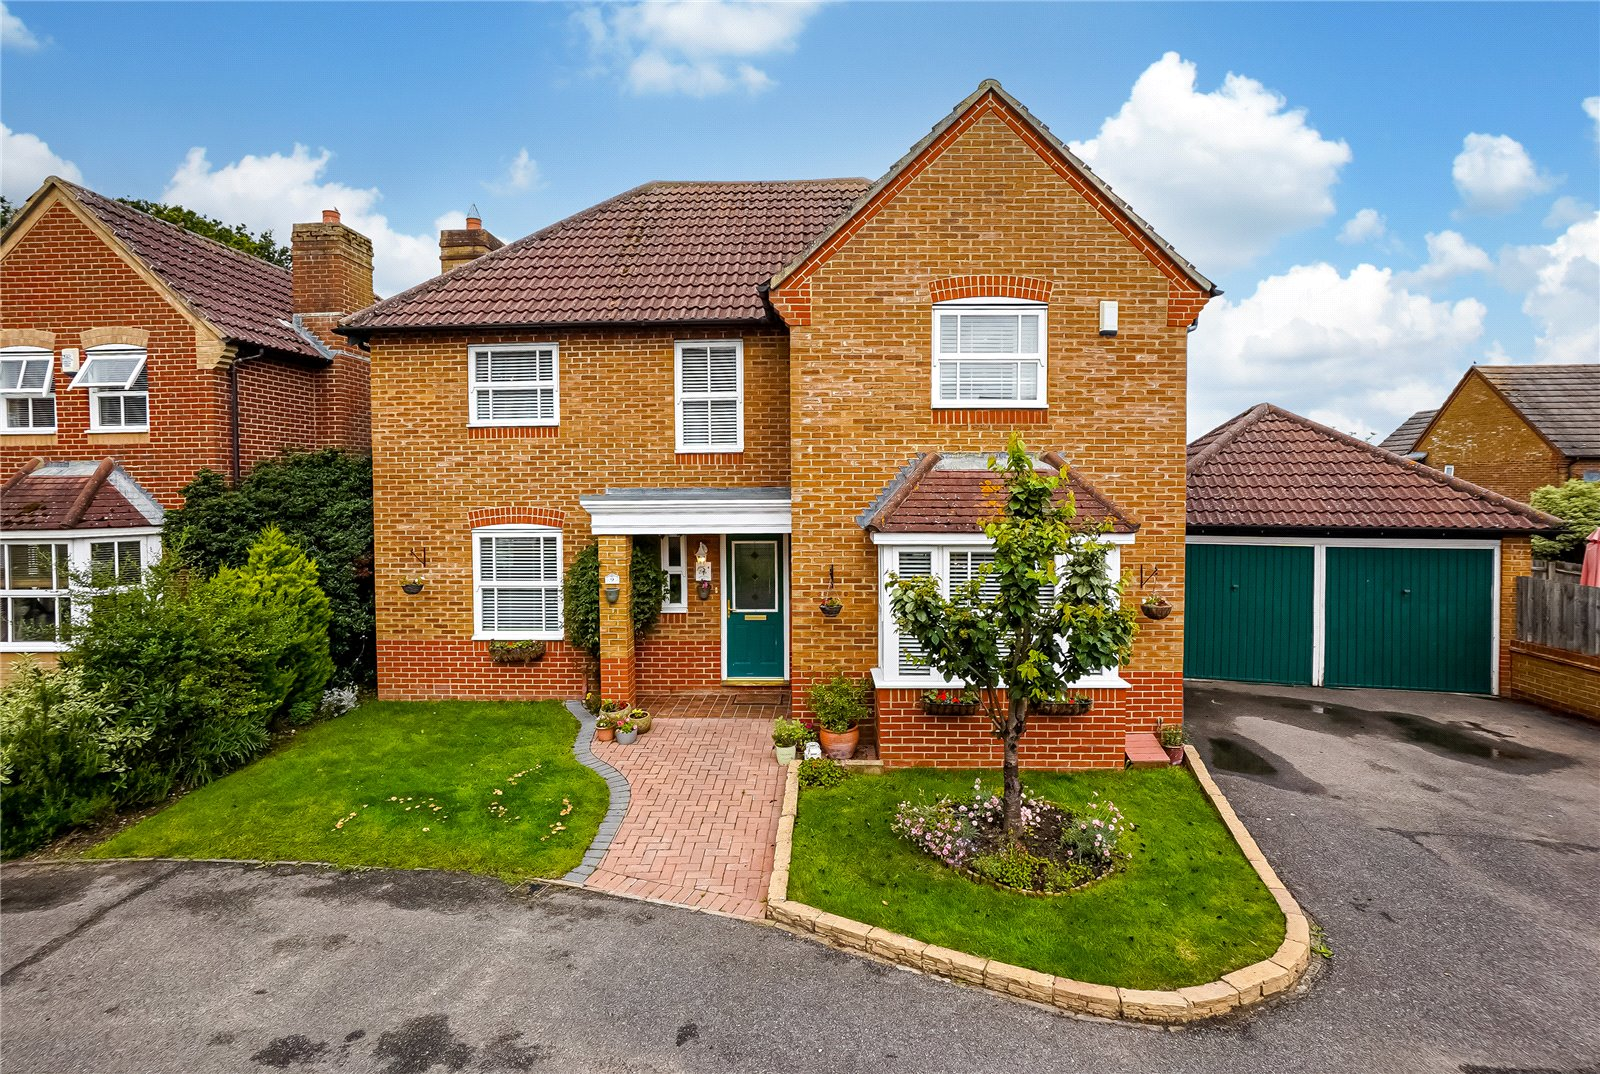 4 bed house for sale in Blackberry Way, Paddock Wood - Property Image 1